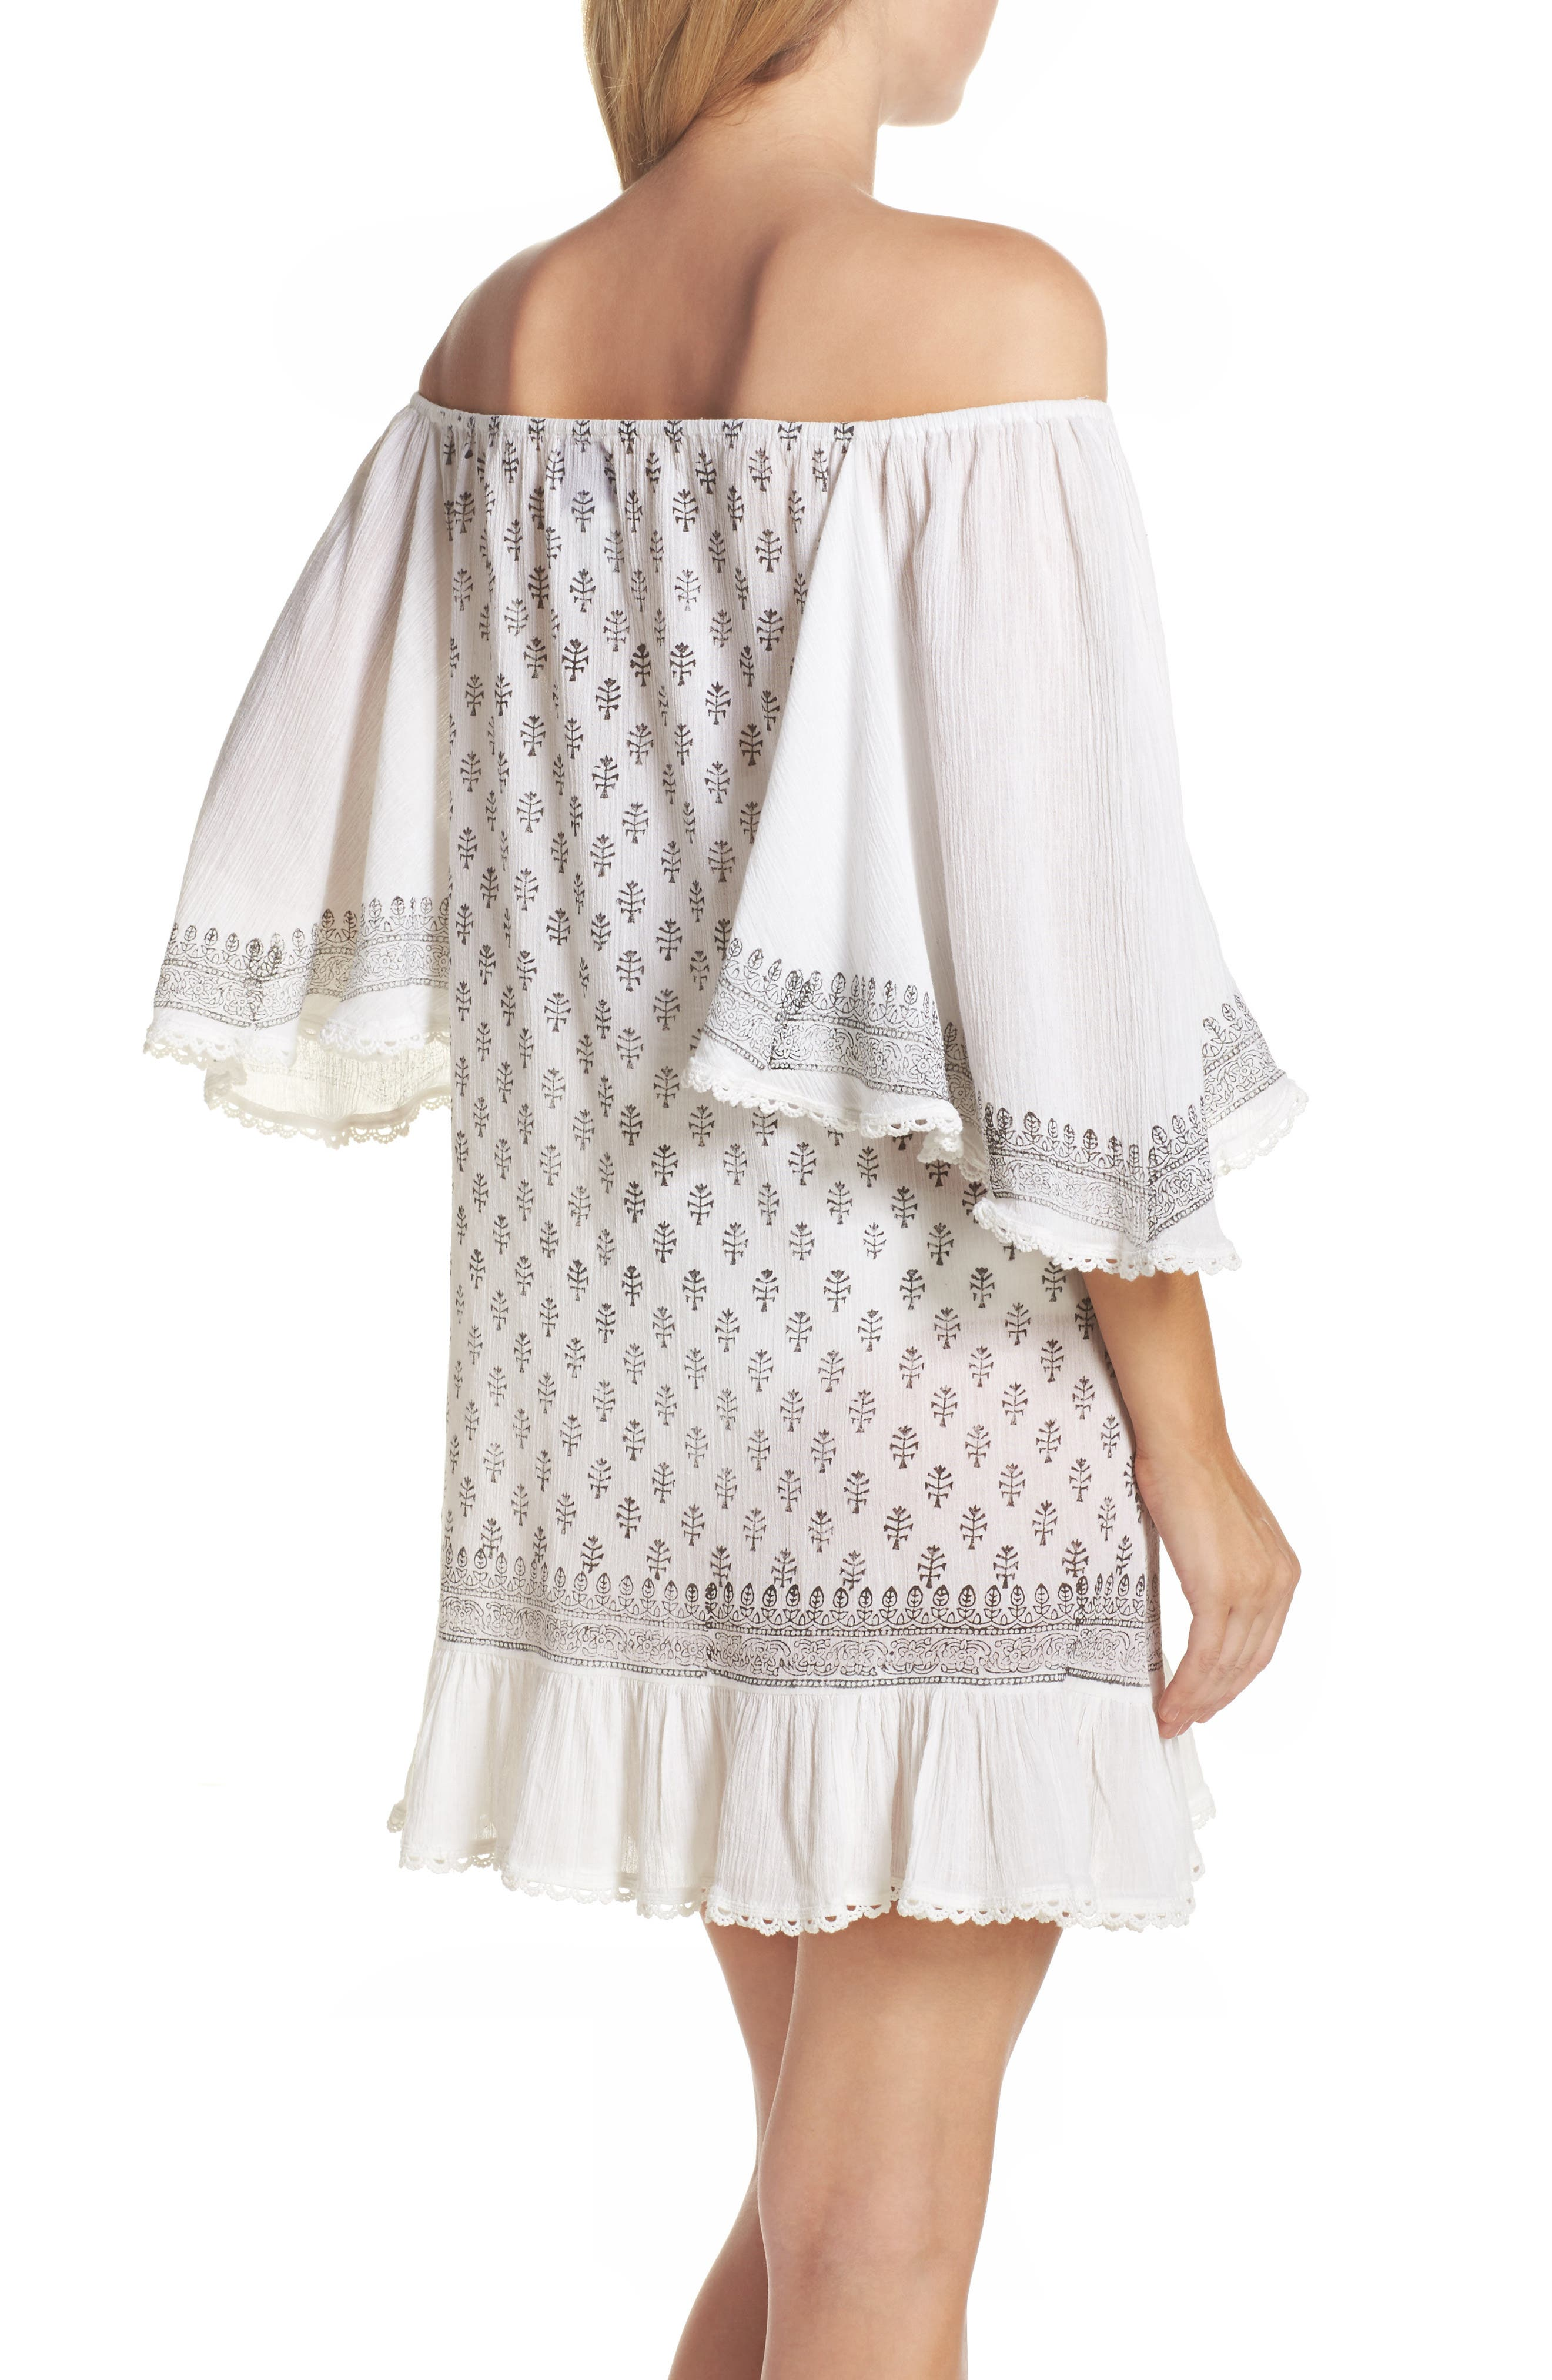 Dreamer Off the Shoulder Cover-Up Dress,                             Alternate thumbnail 2, color,                             100